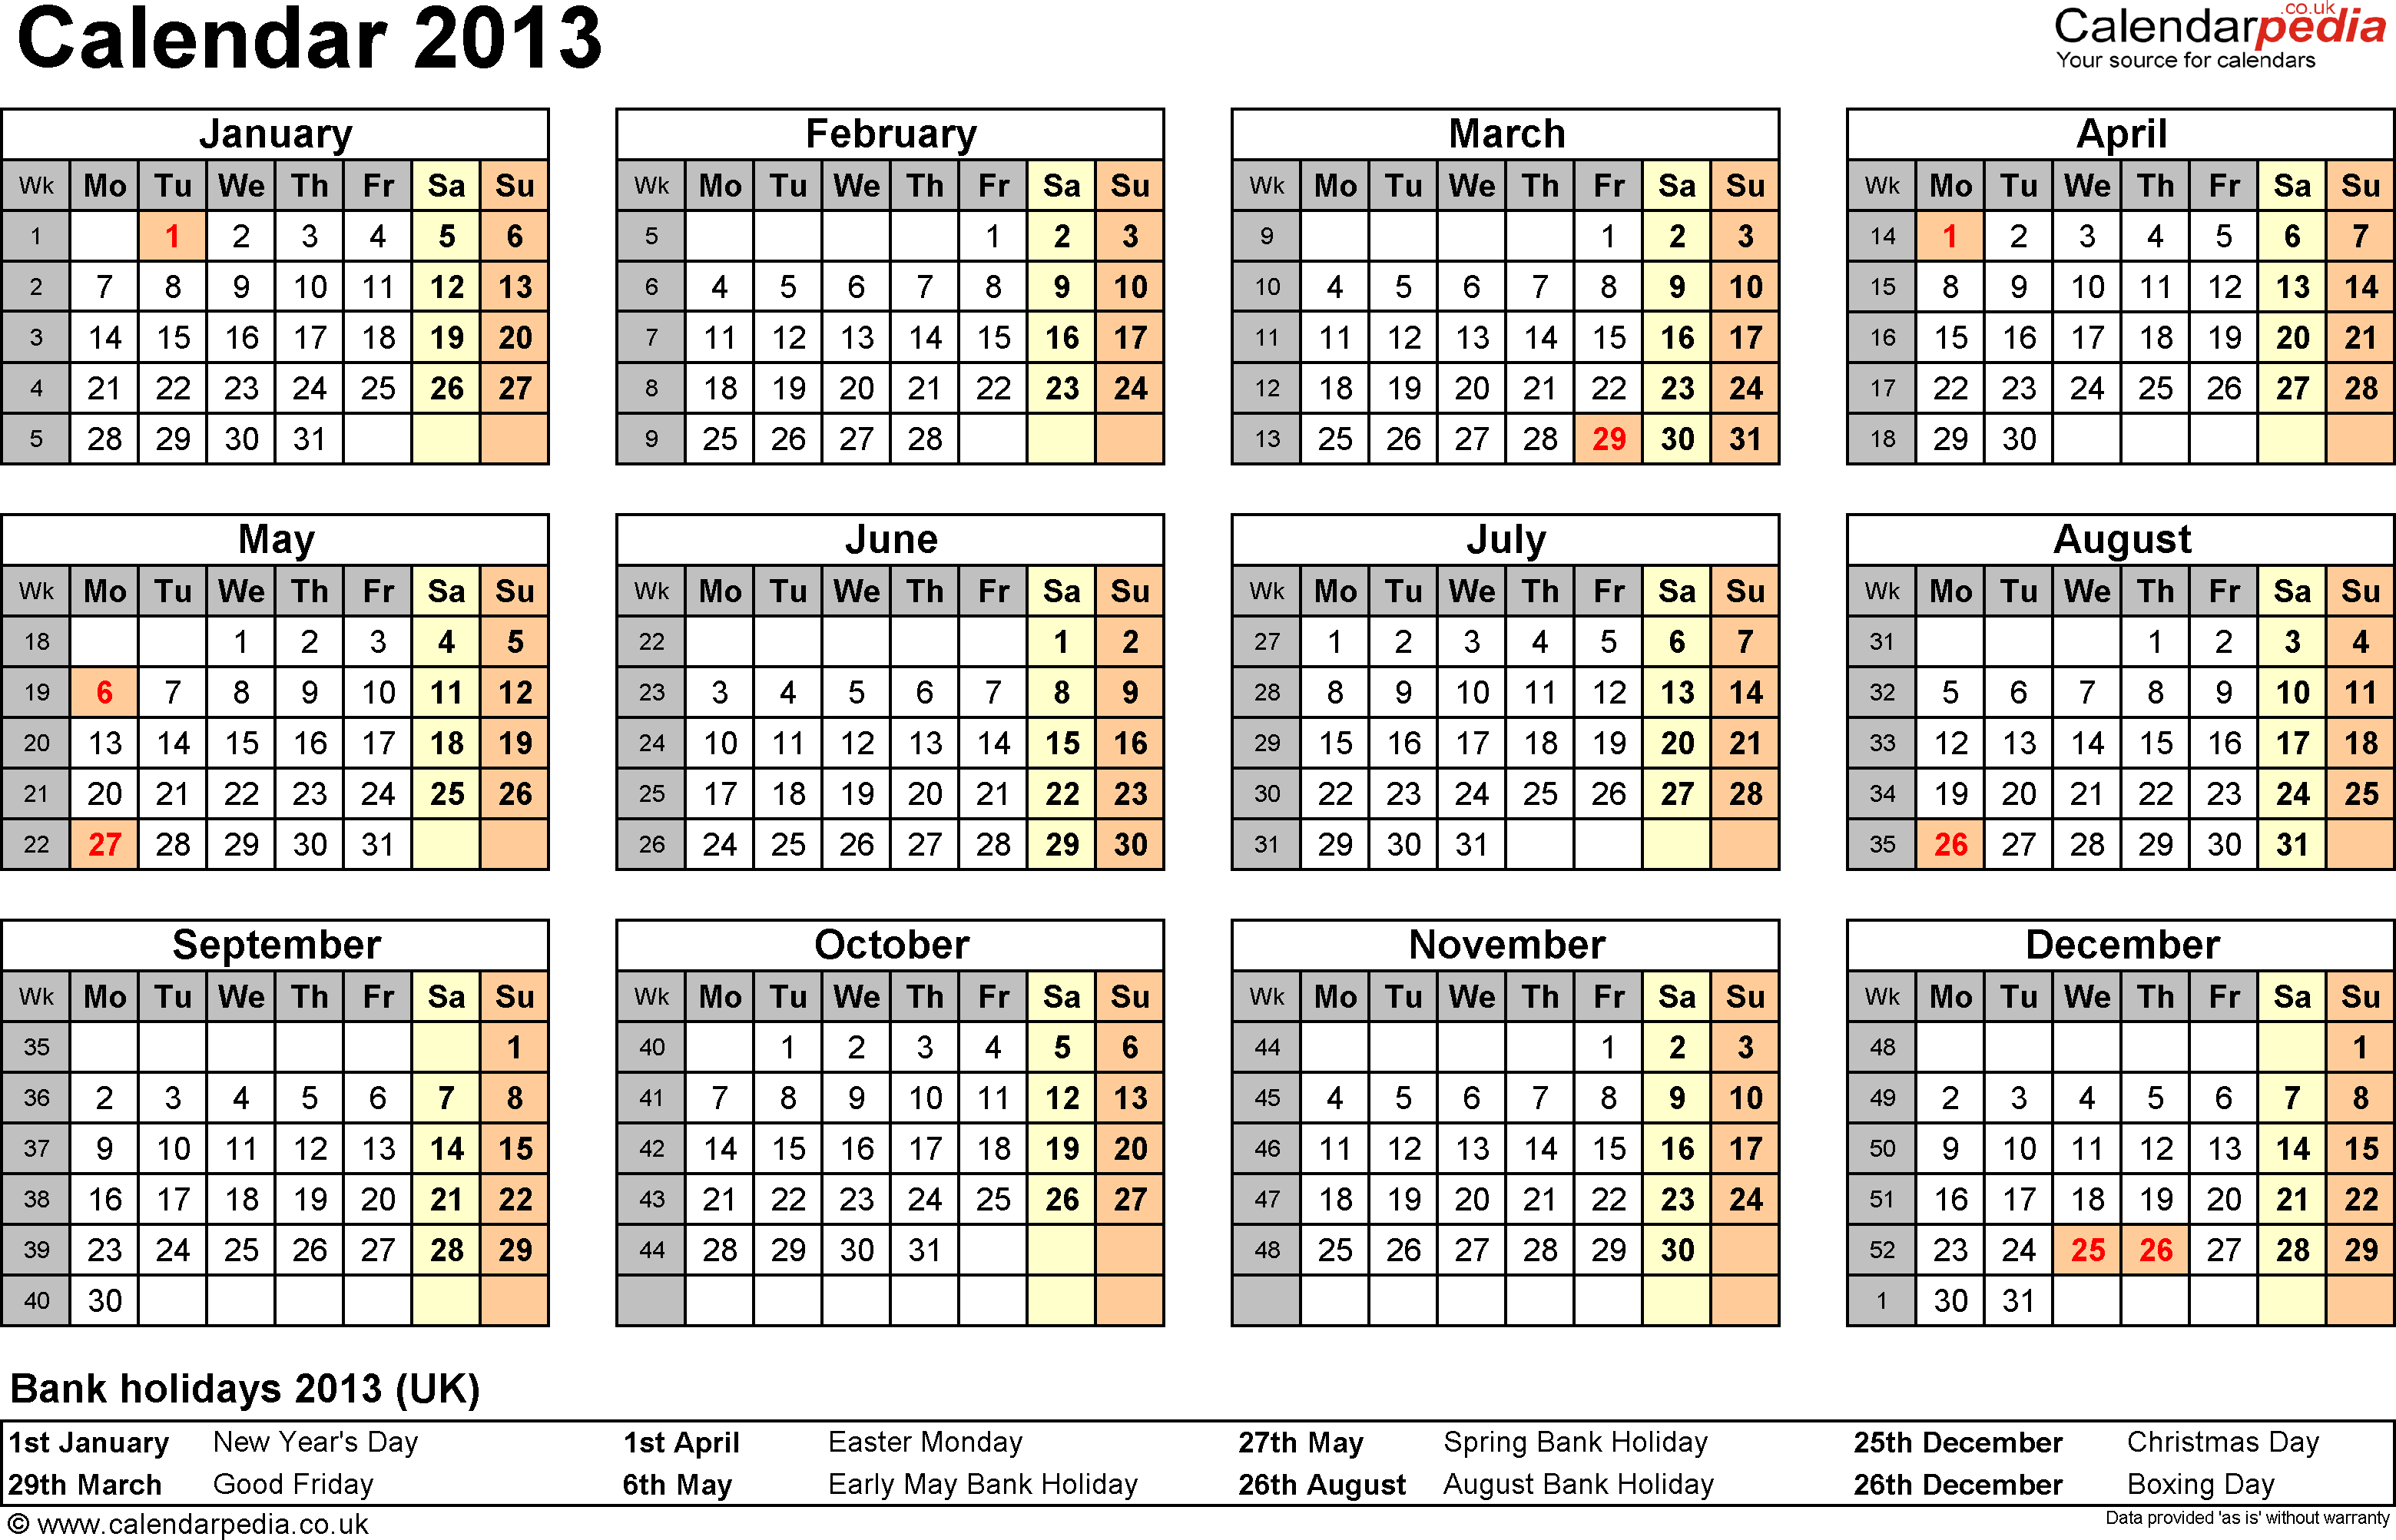 Download Template 7: Yearly calendar 2013 as PDF template, year overview, 1 page